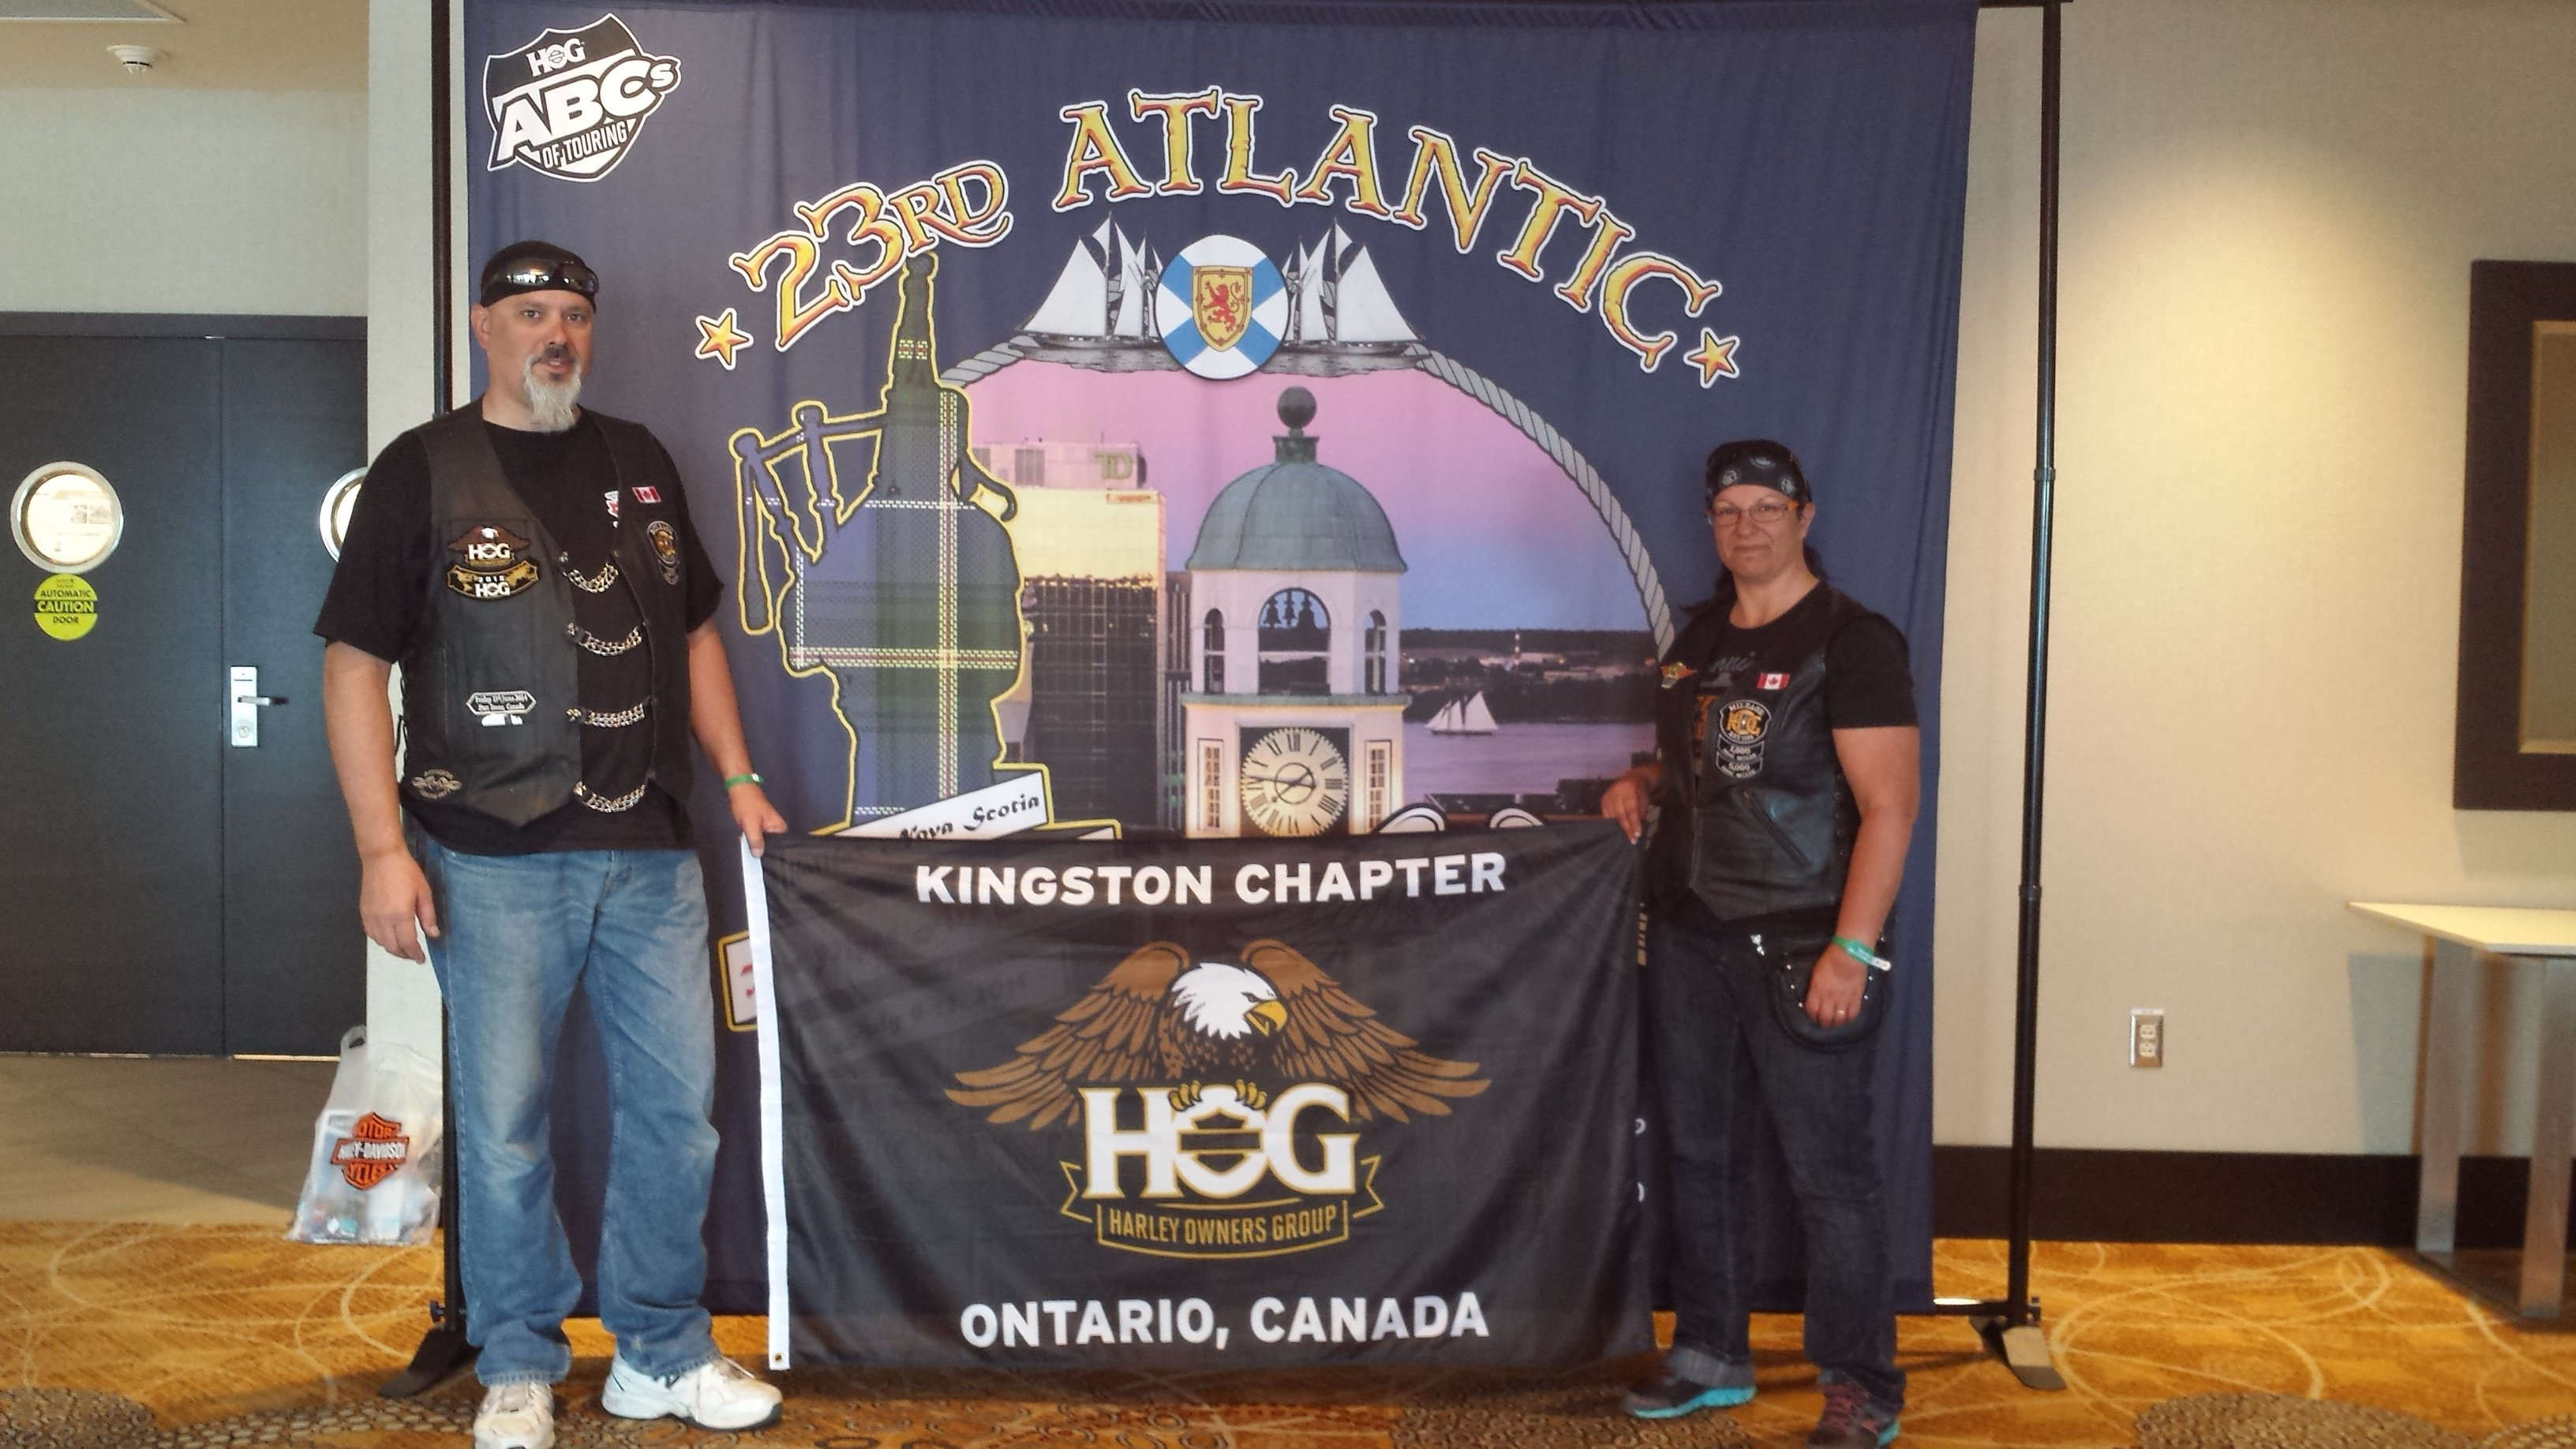 Atlantic HOG Rally 2015